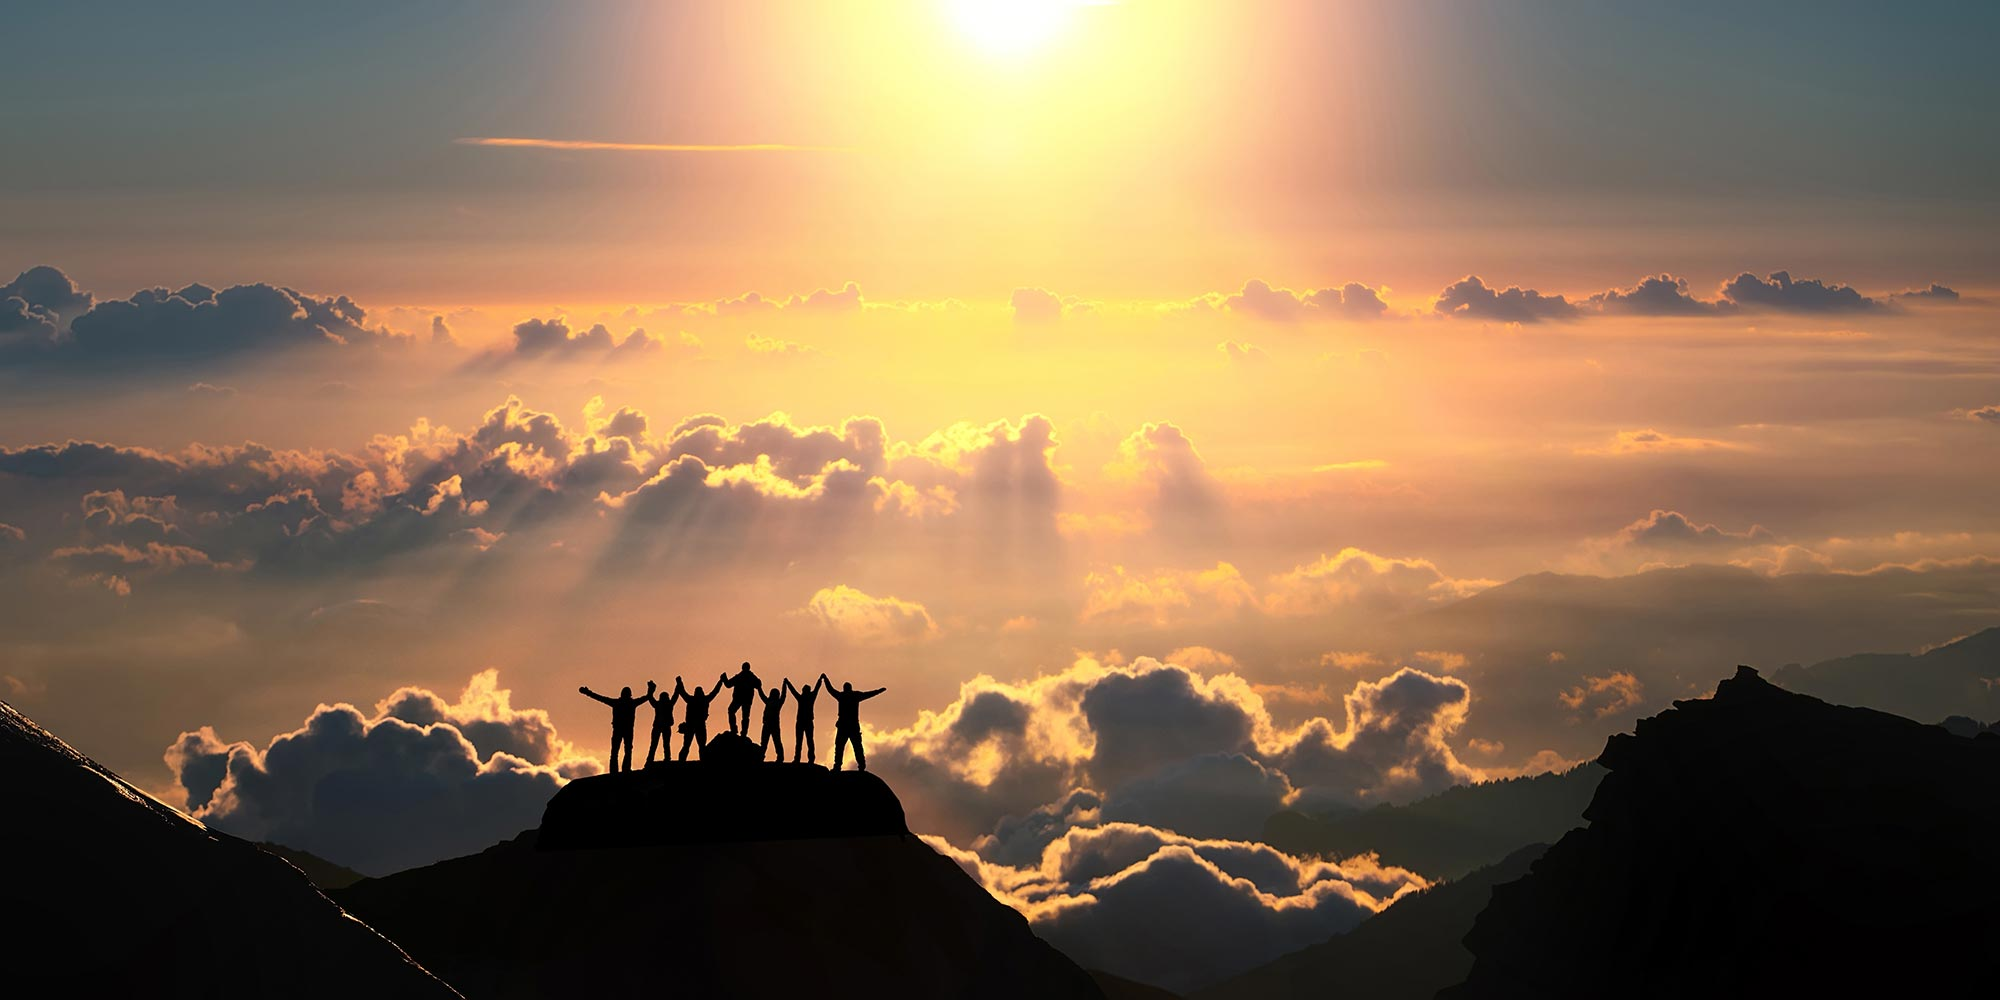 group-of-people-silhouette-on-mountain-clouds-sunset.jpg